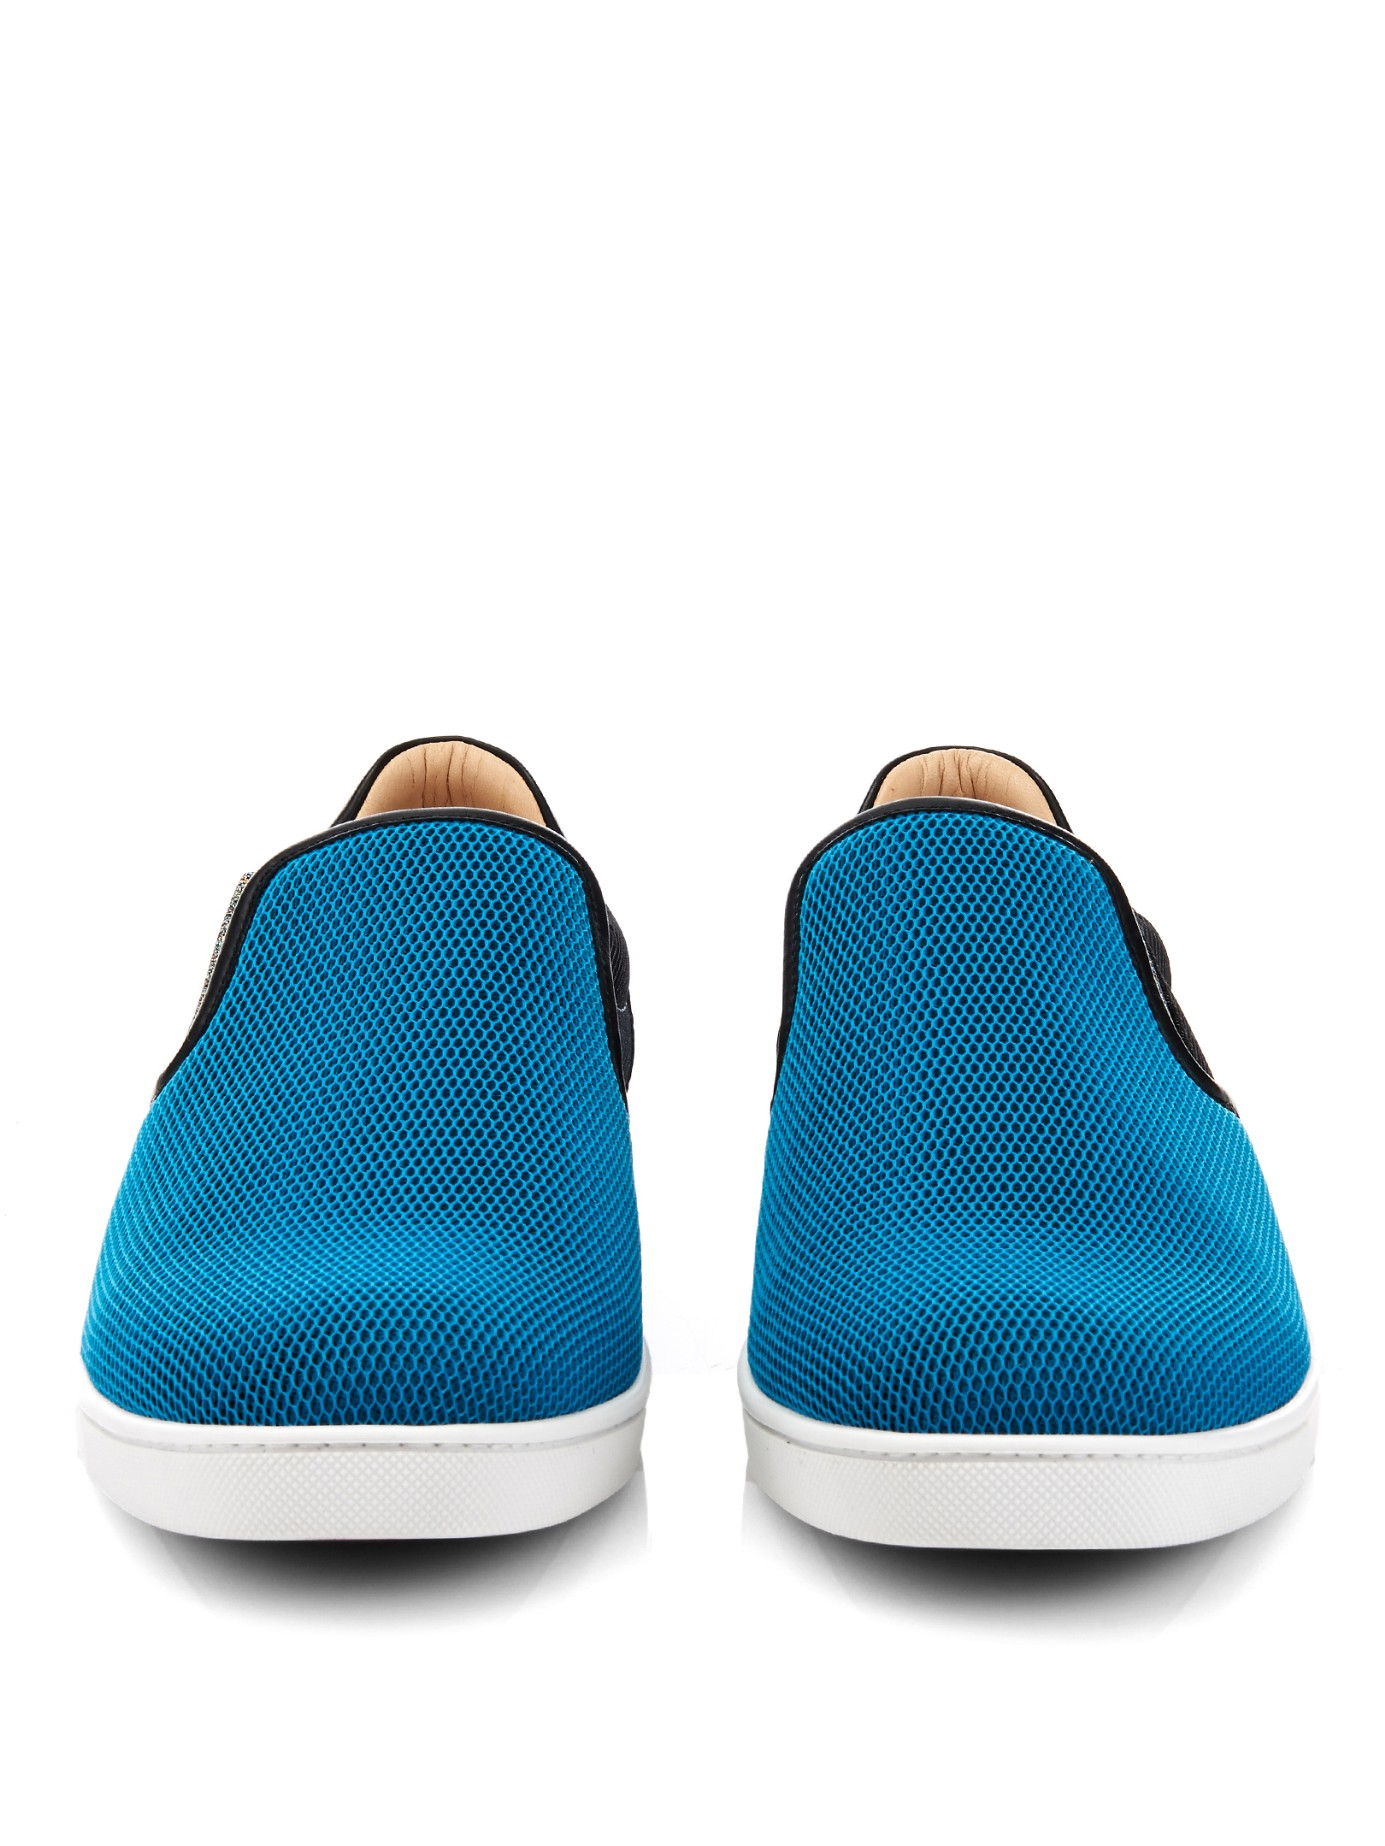 Christian Louboutin Leather Contrast-panel Slip-on Trainers in Blue for Men